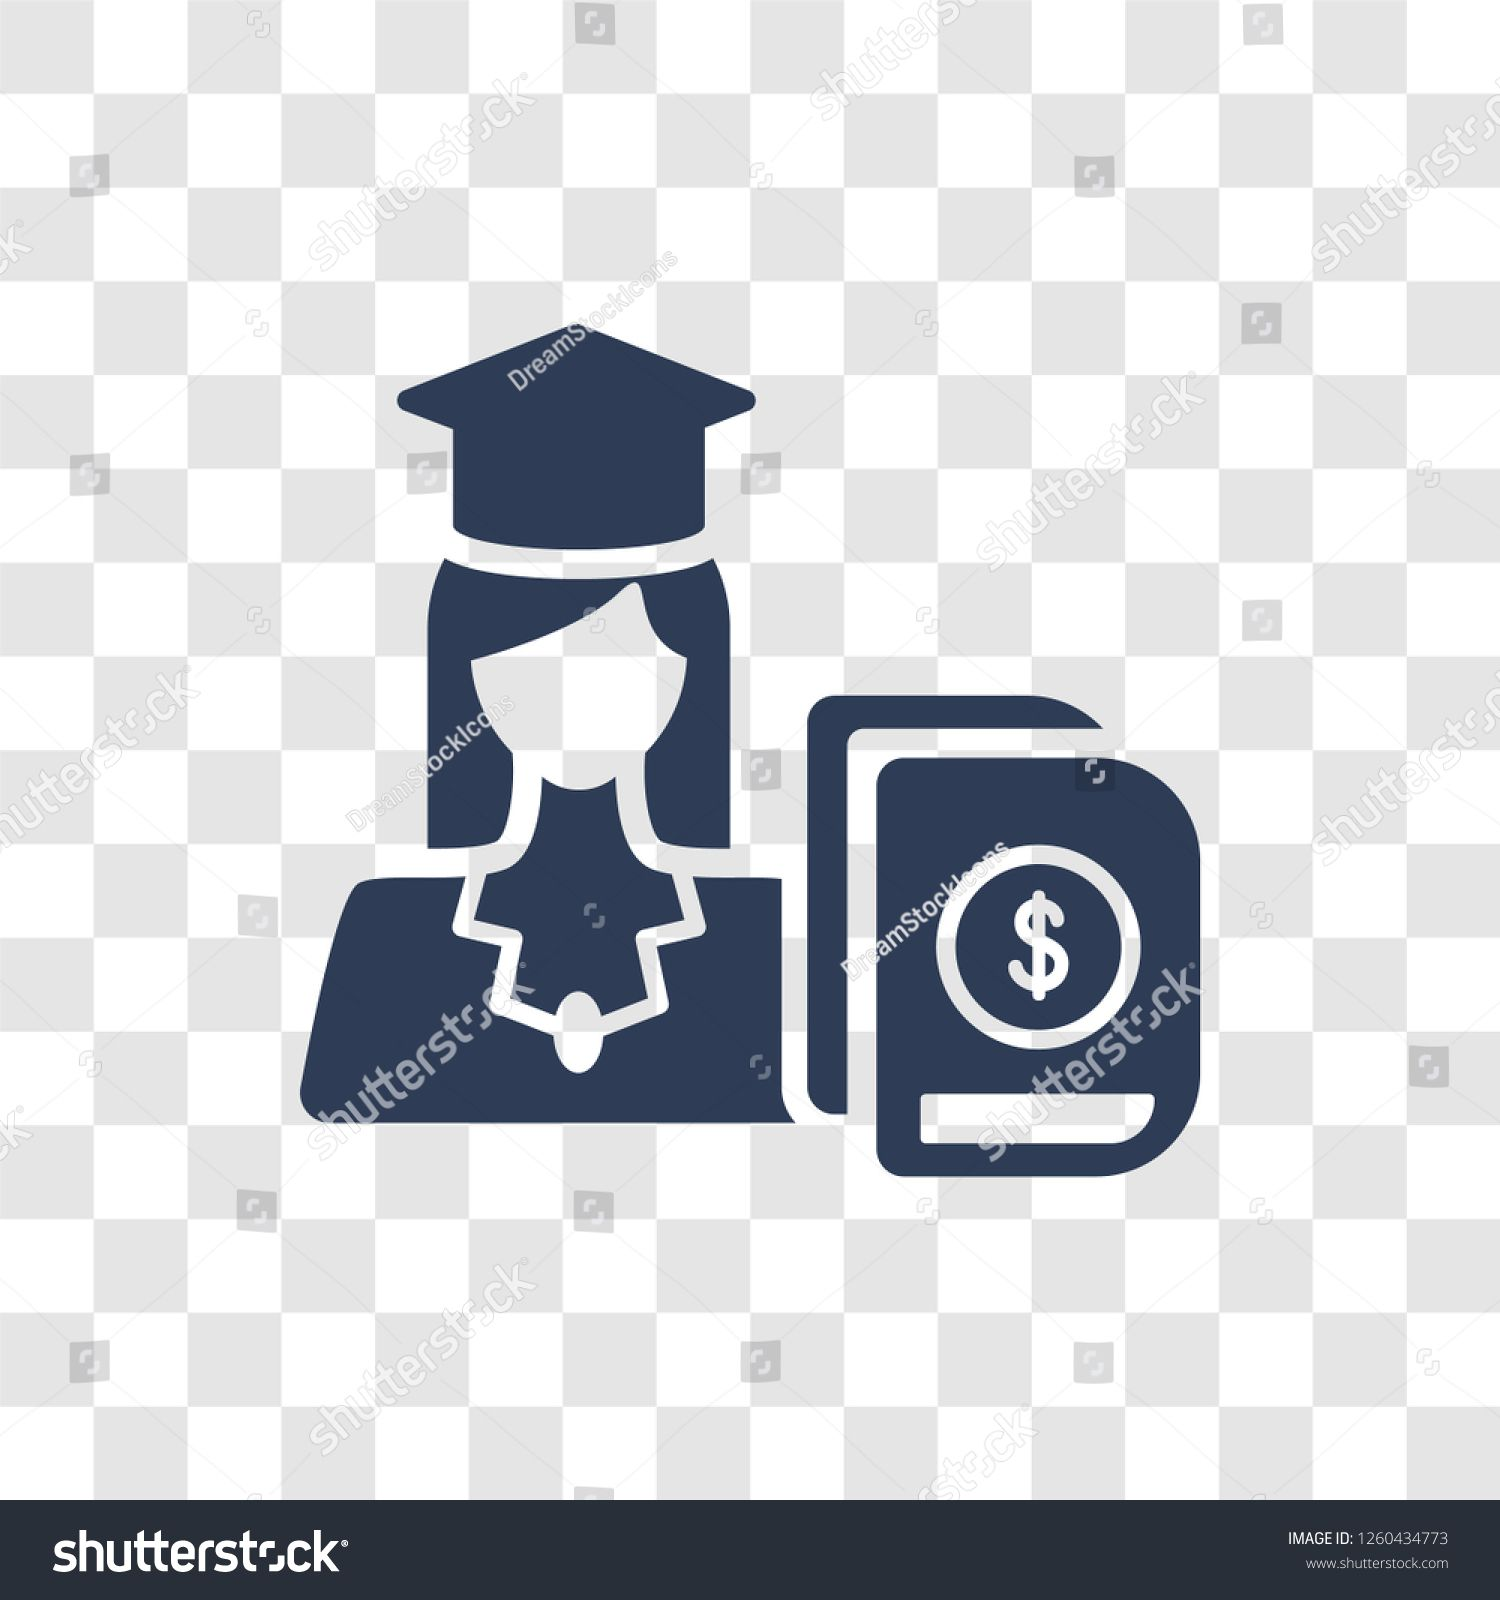 Business Education Icon Trendy Business Education Logo Concept On